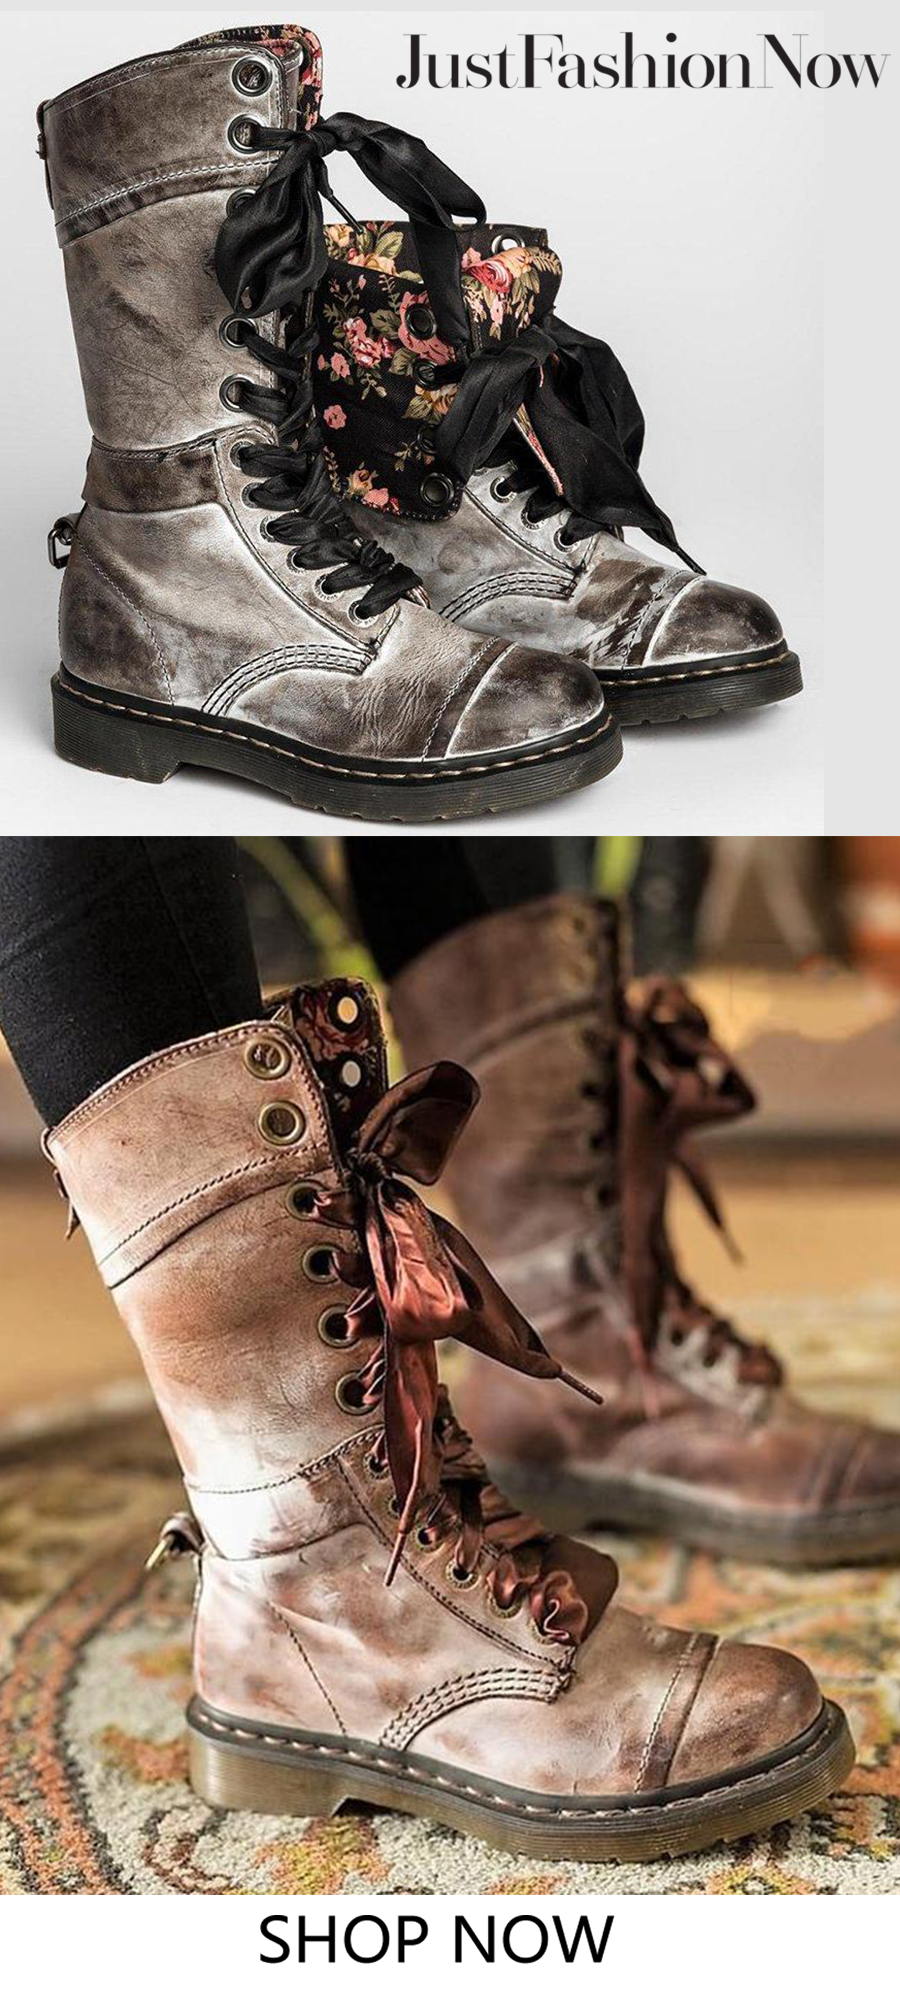 Wedding decorations vintage october 2018 Women Vintage Buckle Boots Side Zipper Round Toe Plus Size Boots in